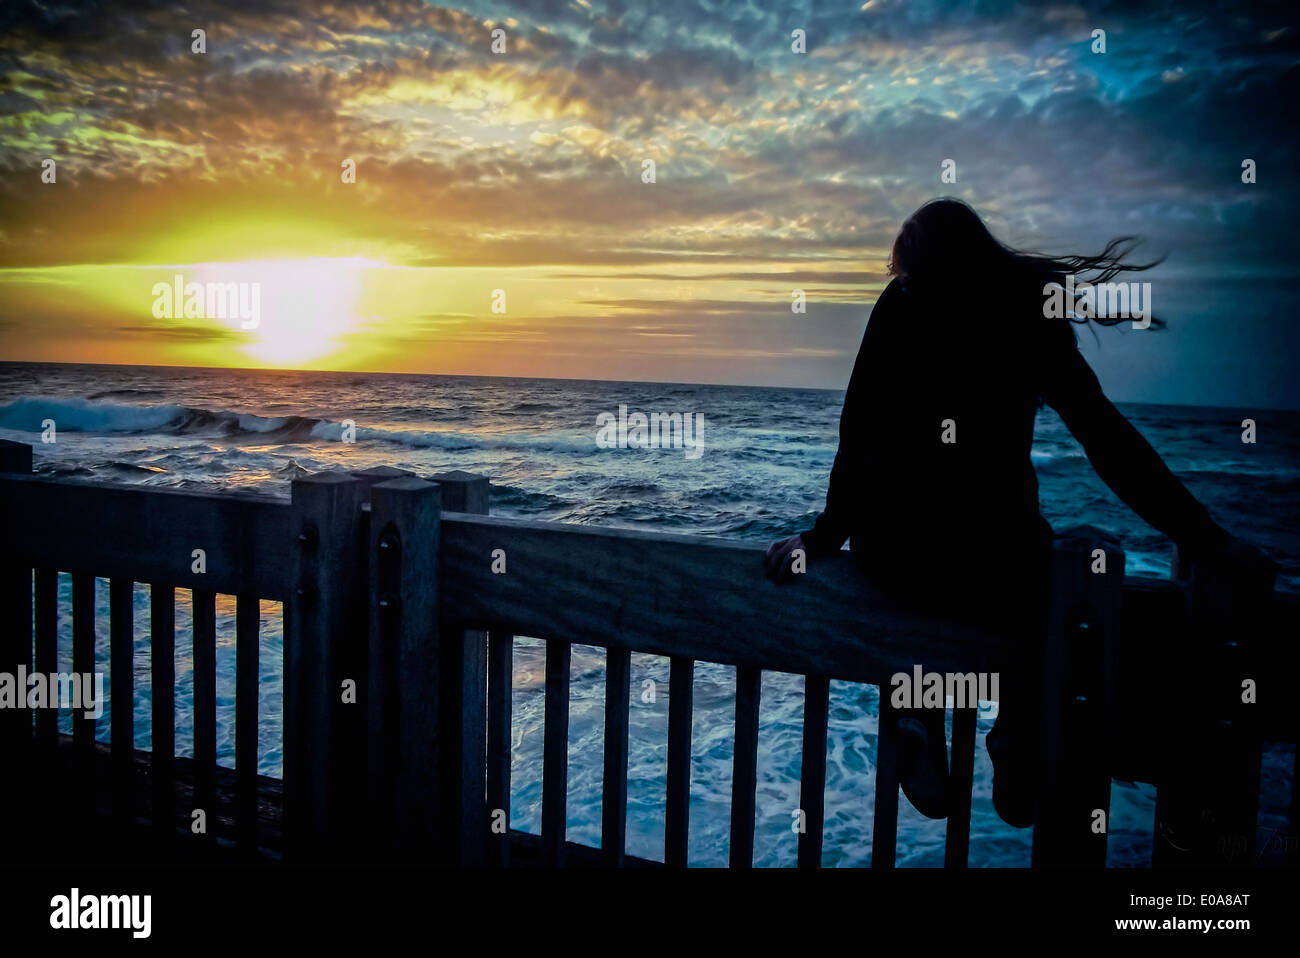 Silhouette of young woman sitting on sea front fence at dawn Stock Photo